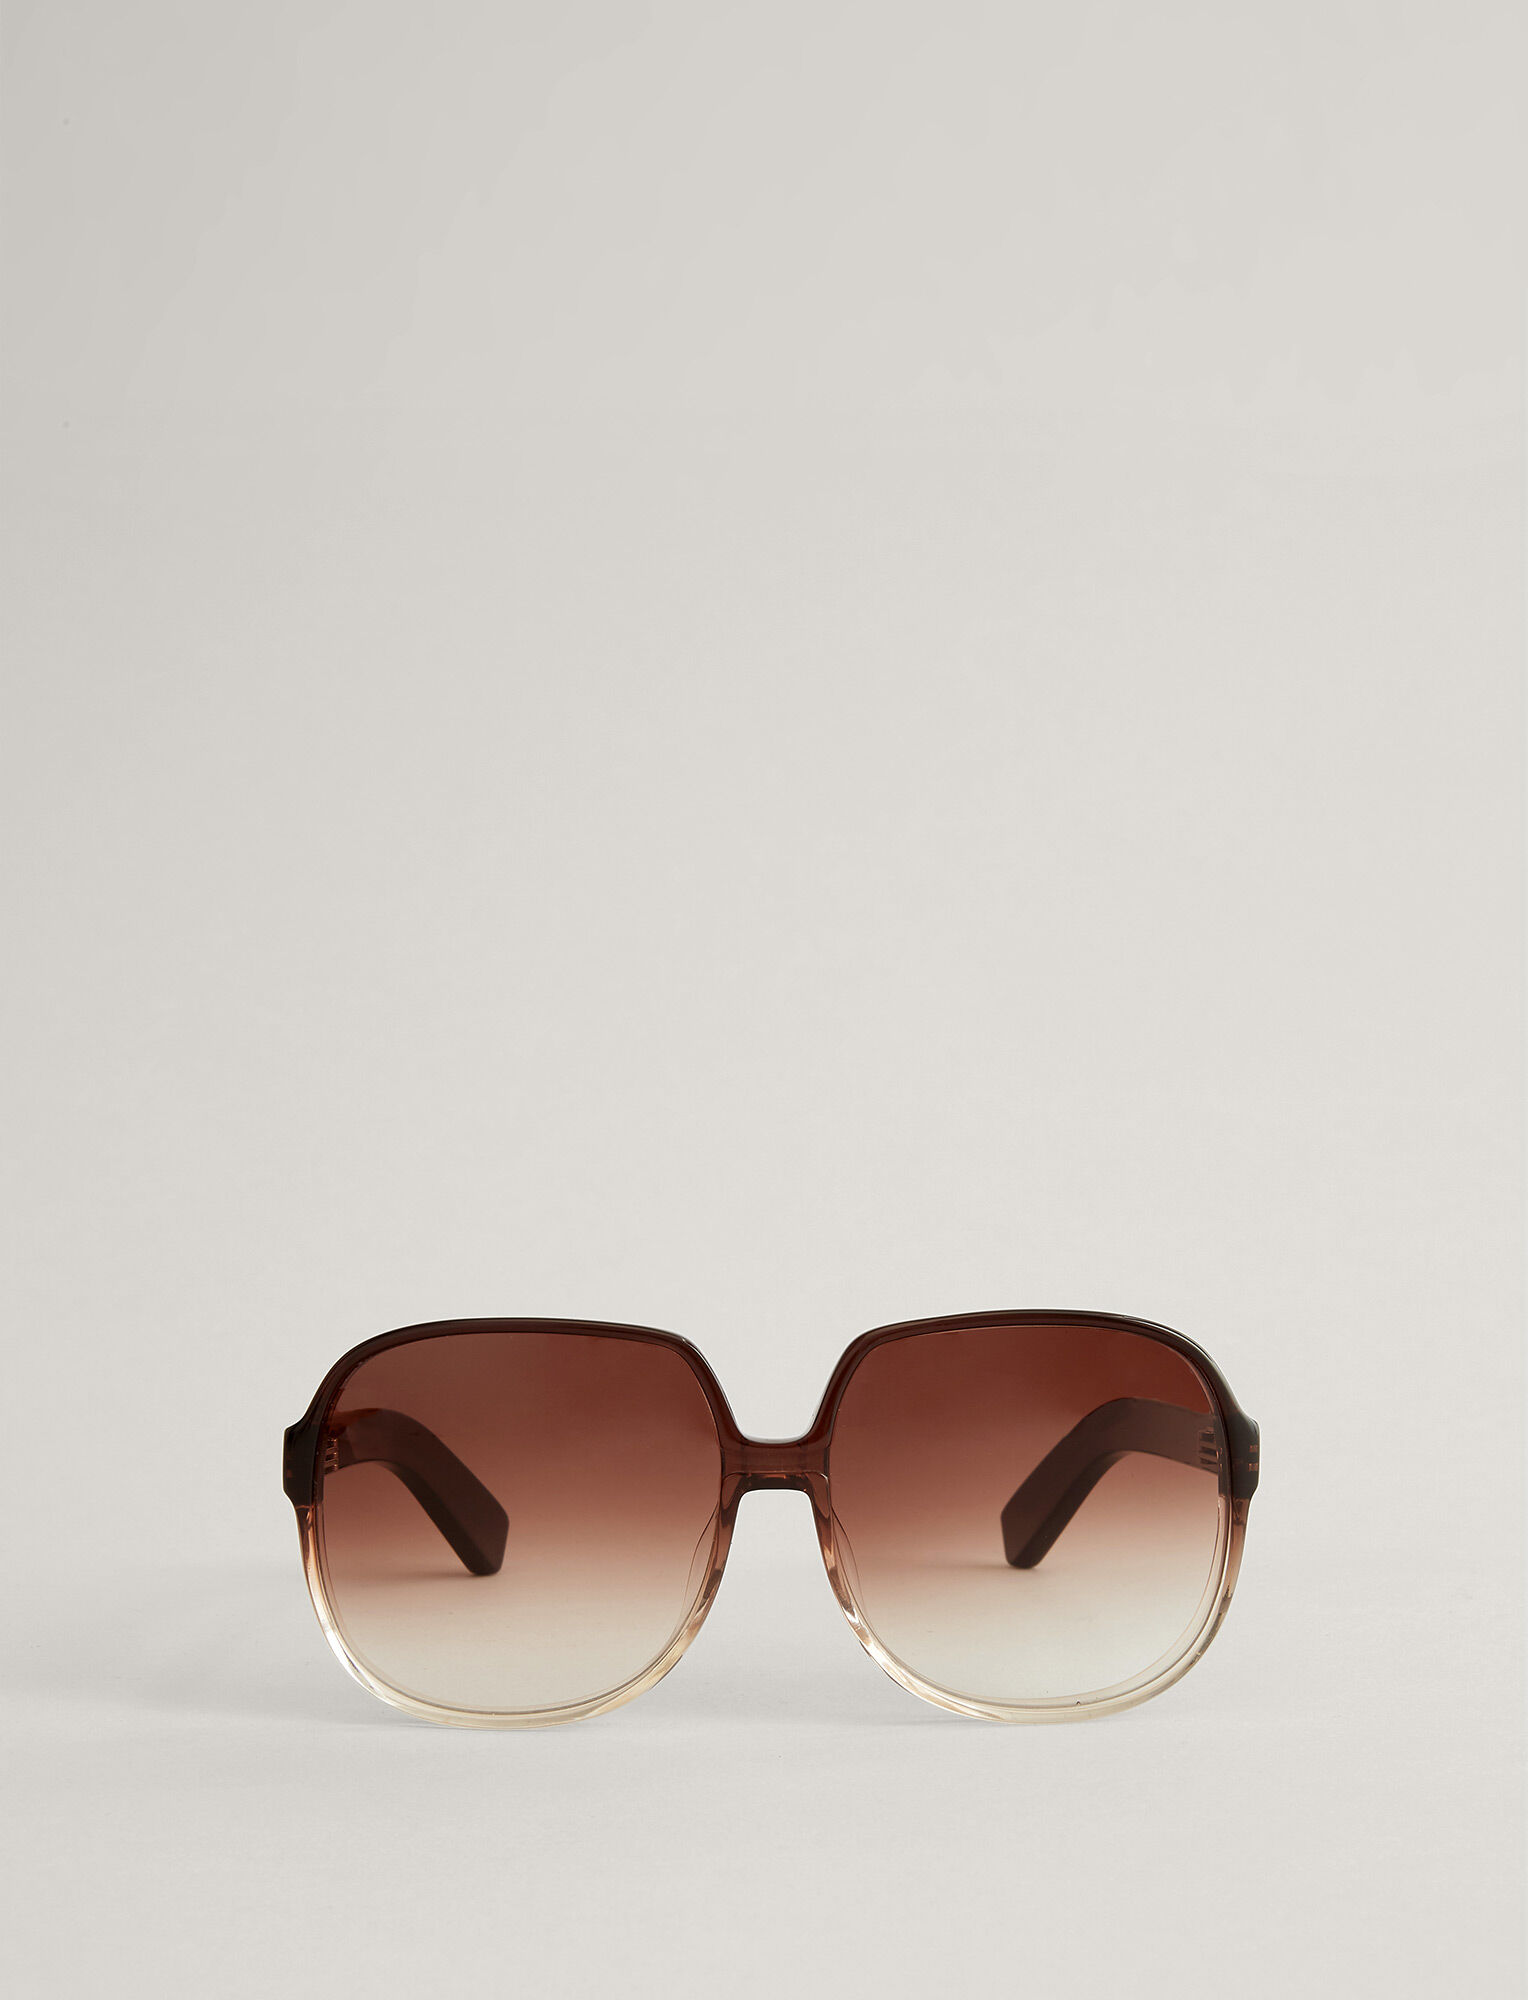 Joseph, Fulham Sunglasses, in TRANSPARENT BROWN